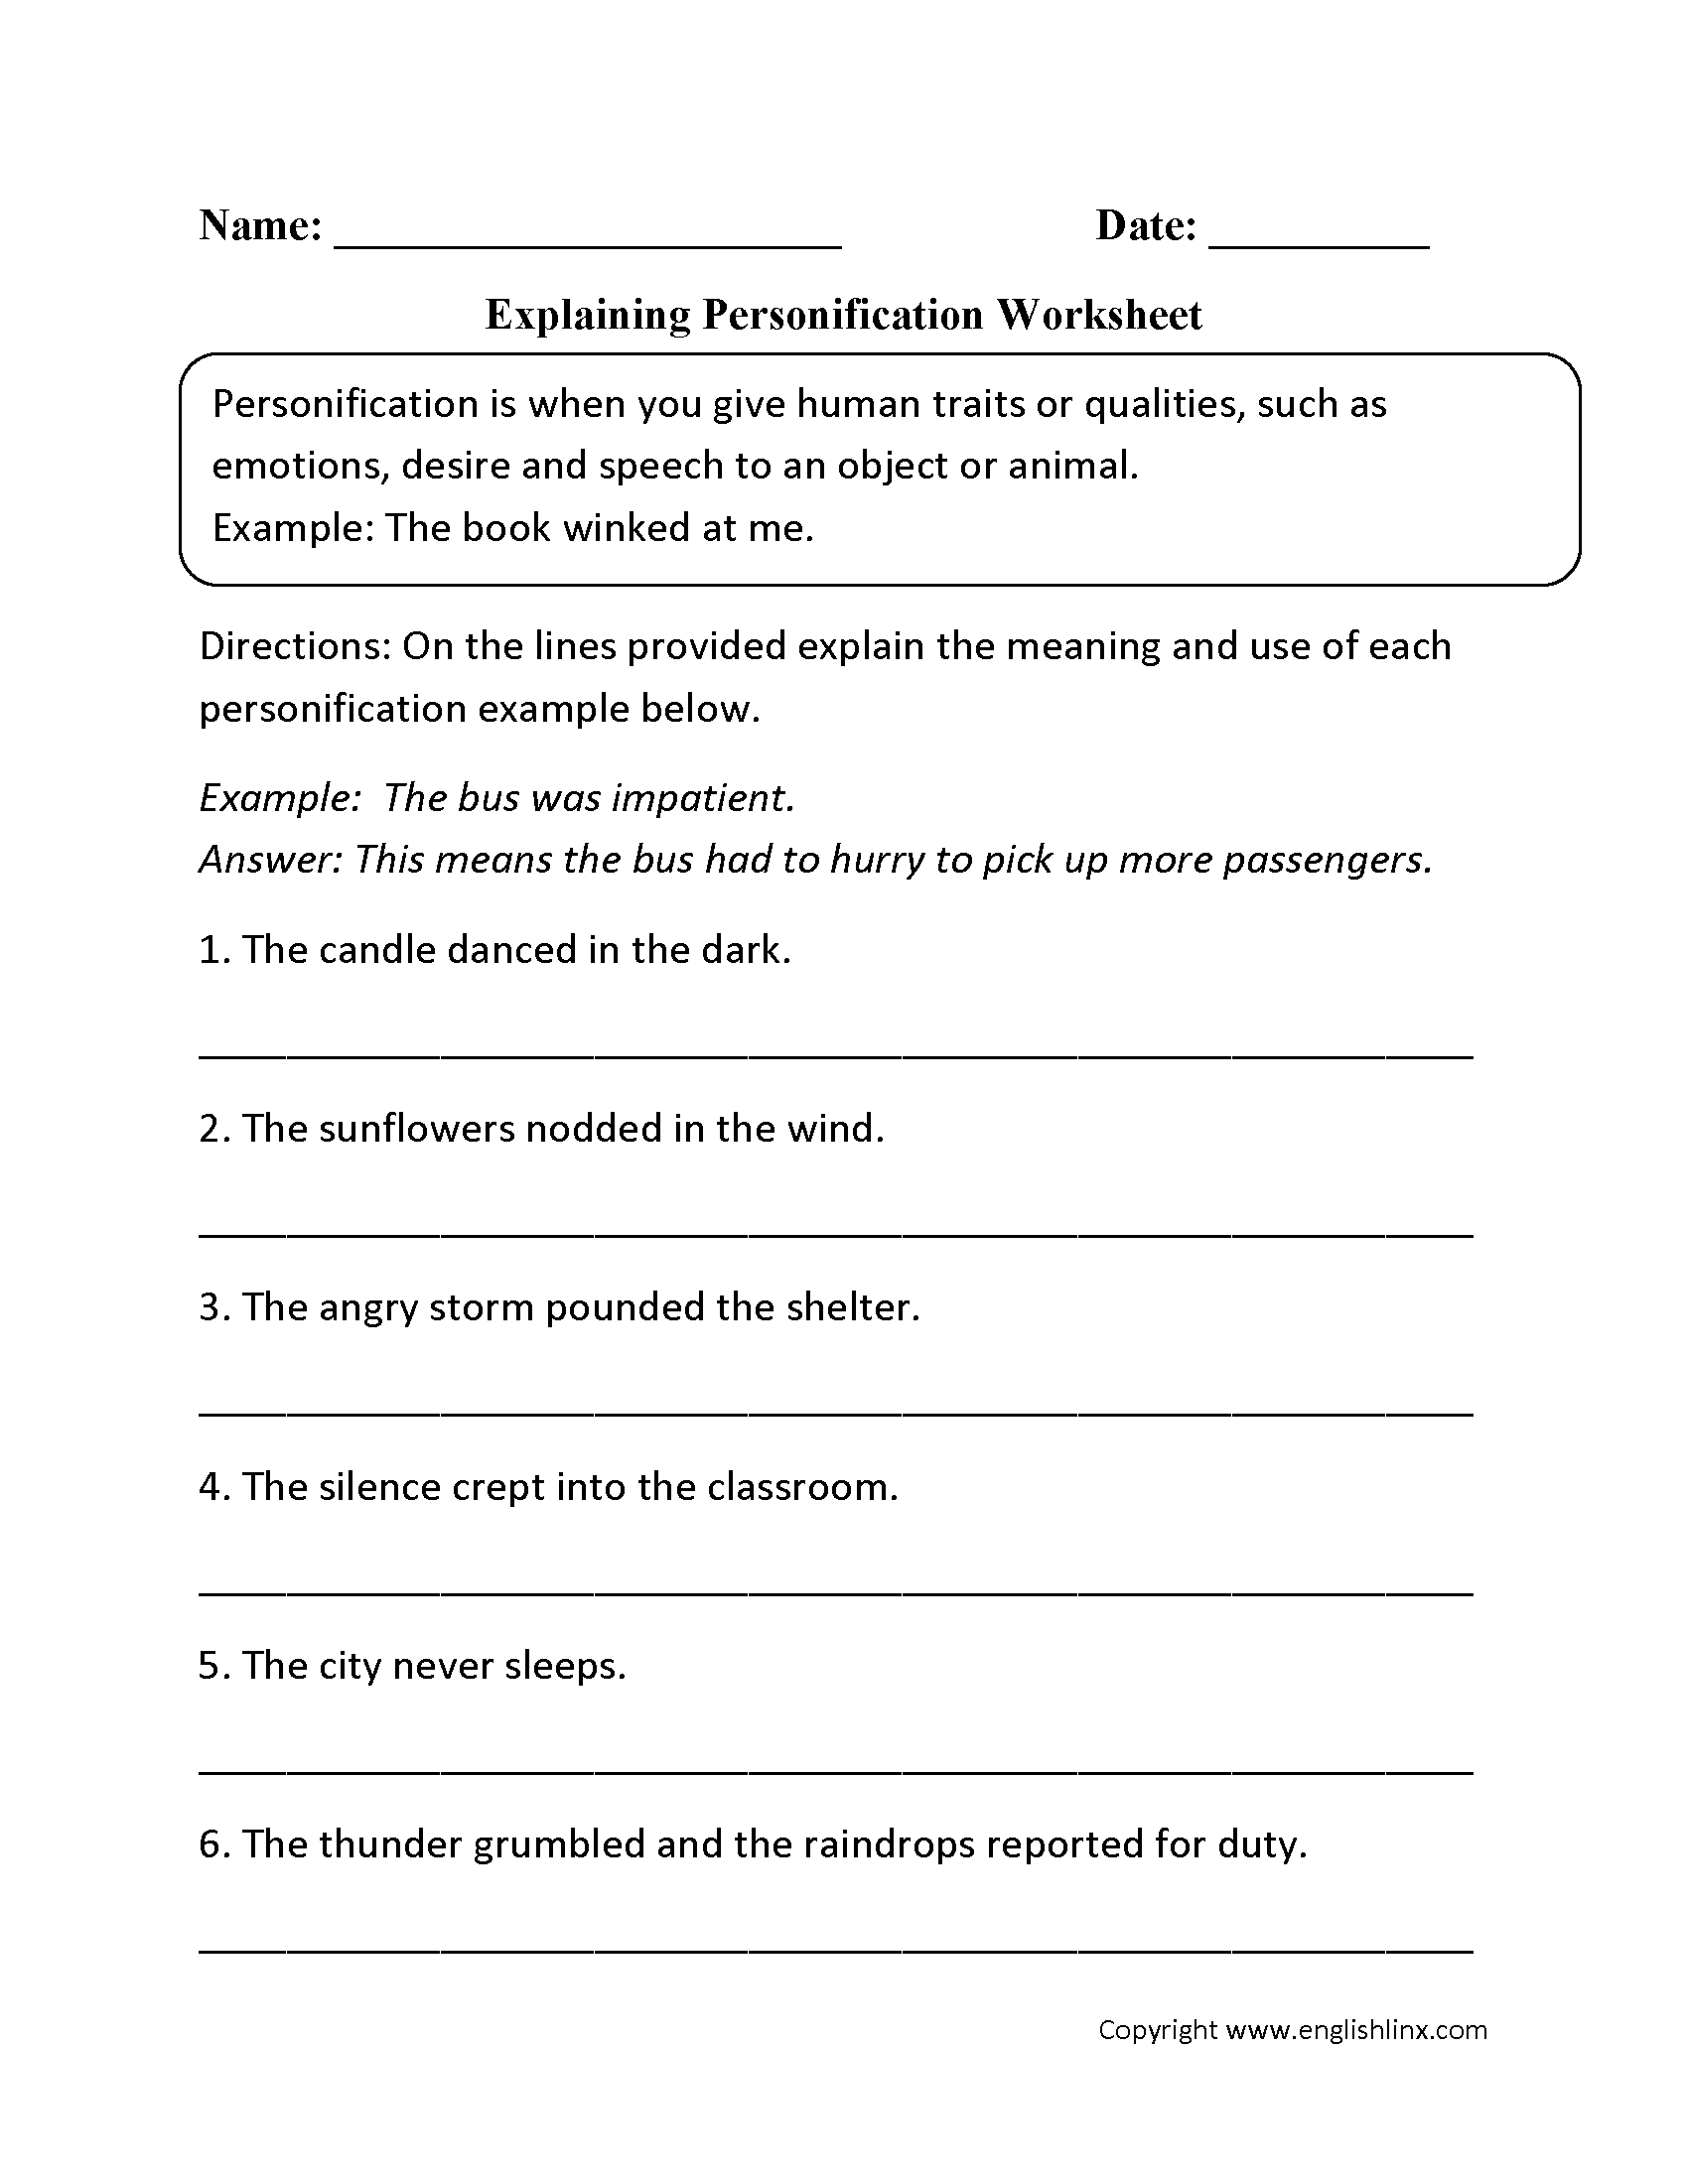 Explaining Personification Worksheet